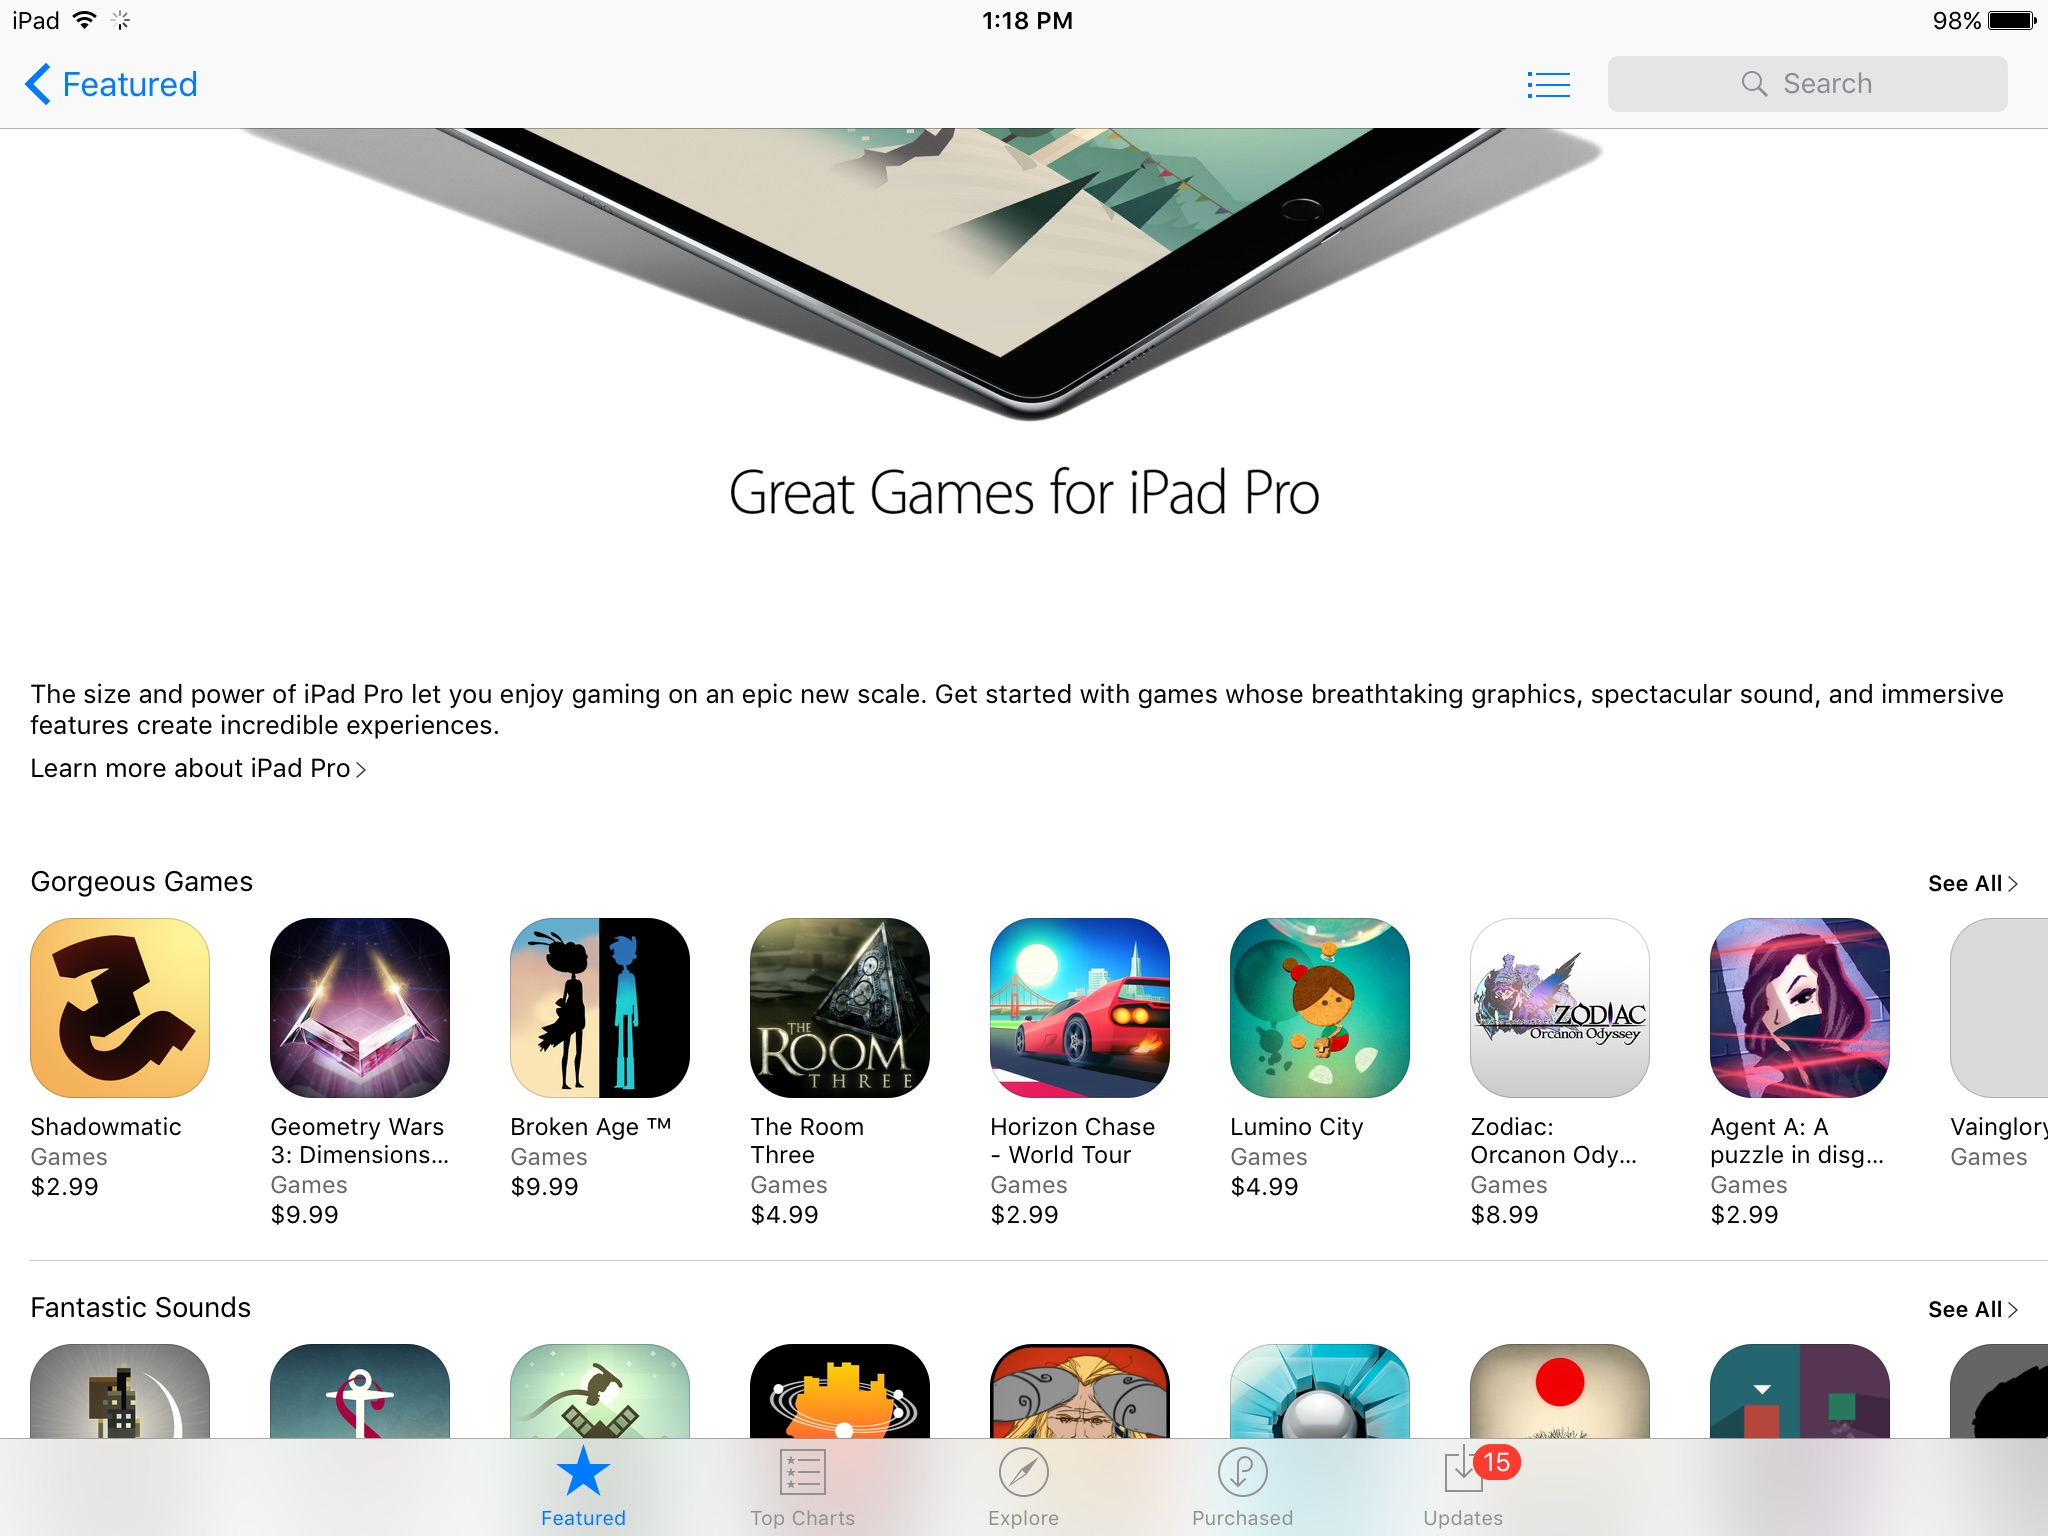 Great Games for iPad Pro